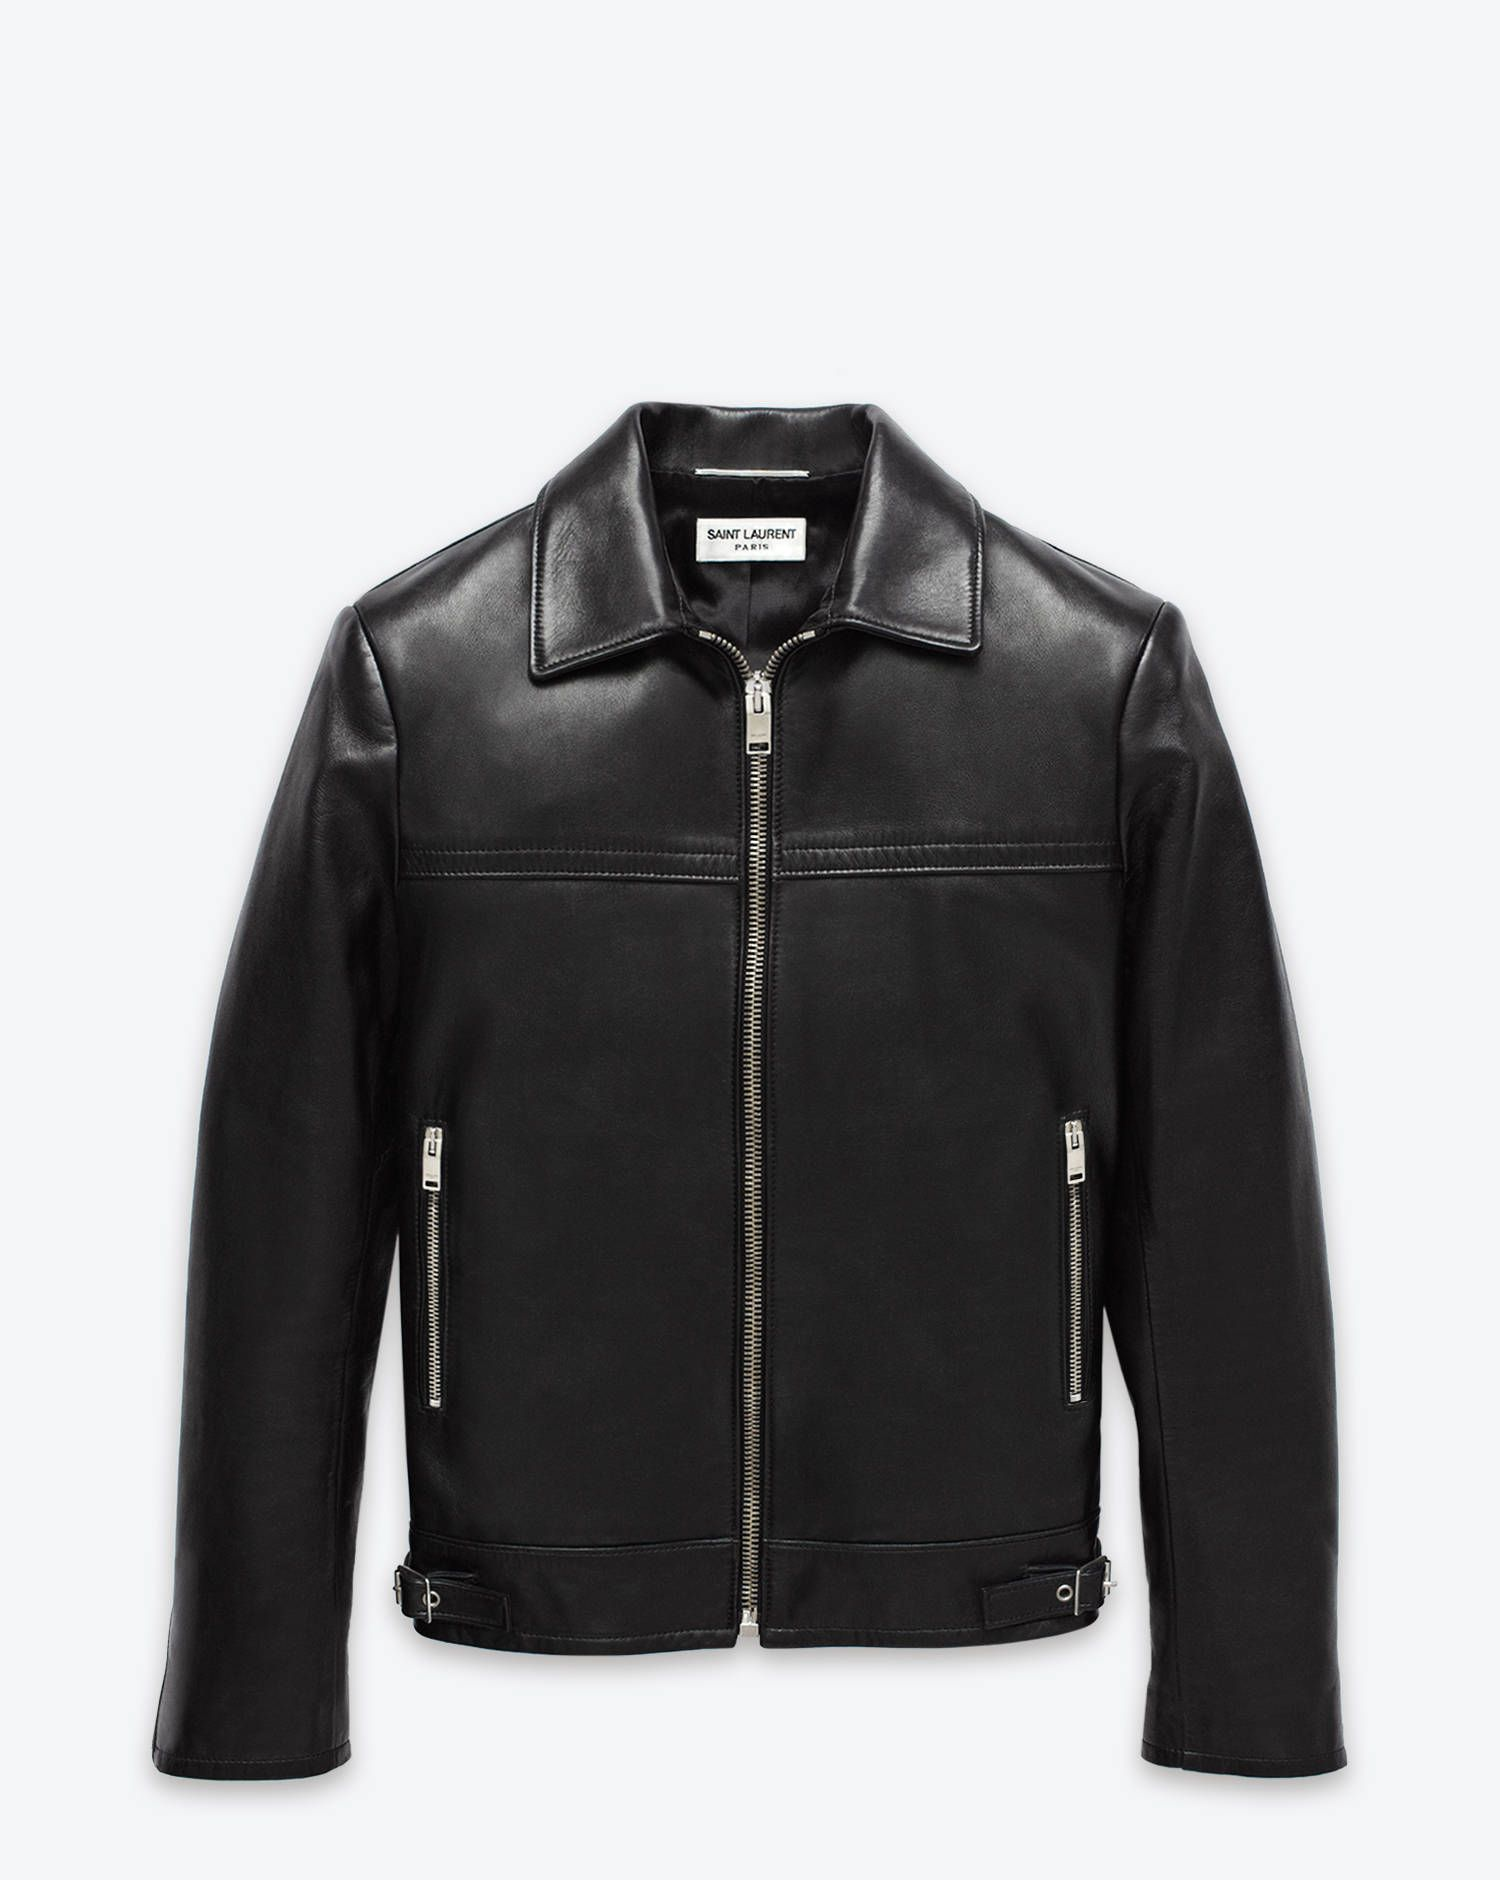 1b9212a6d Keith Café Racer Black Leather Jacket from Saint Laurent. | Fashion ...